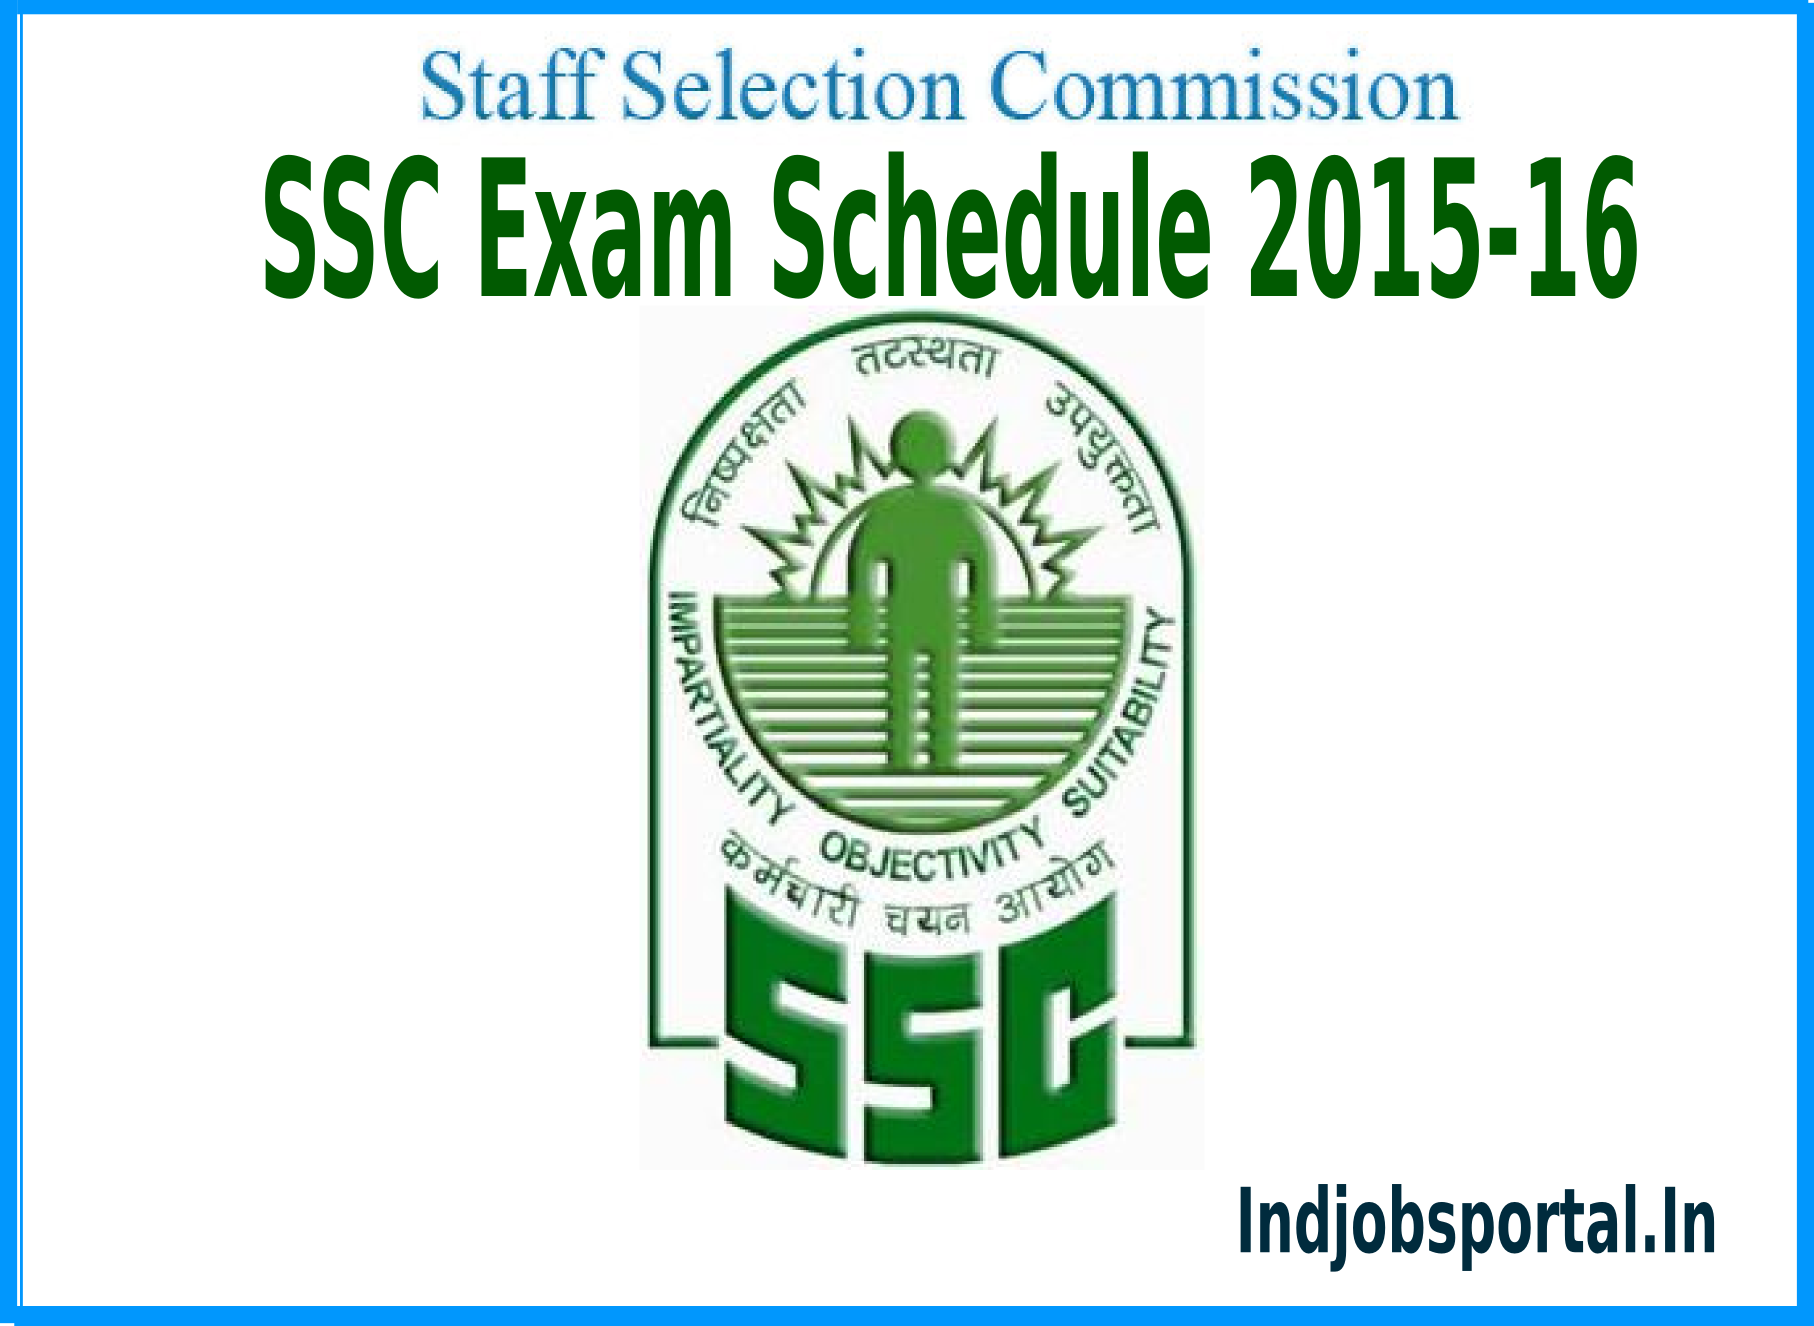 SSC Exam Schedule 2015-16 SSC Notification 2015 And Exam Time Table